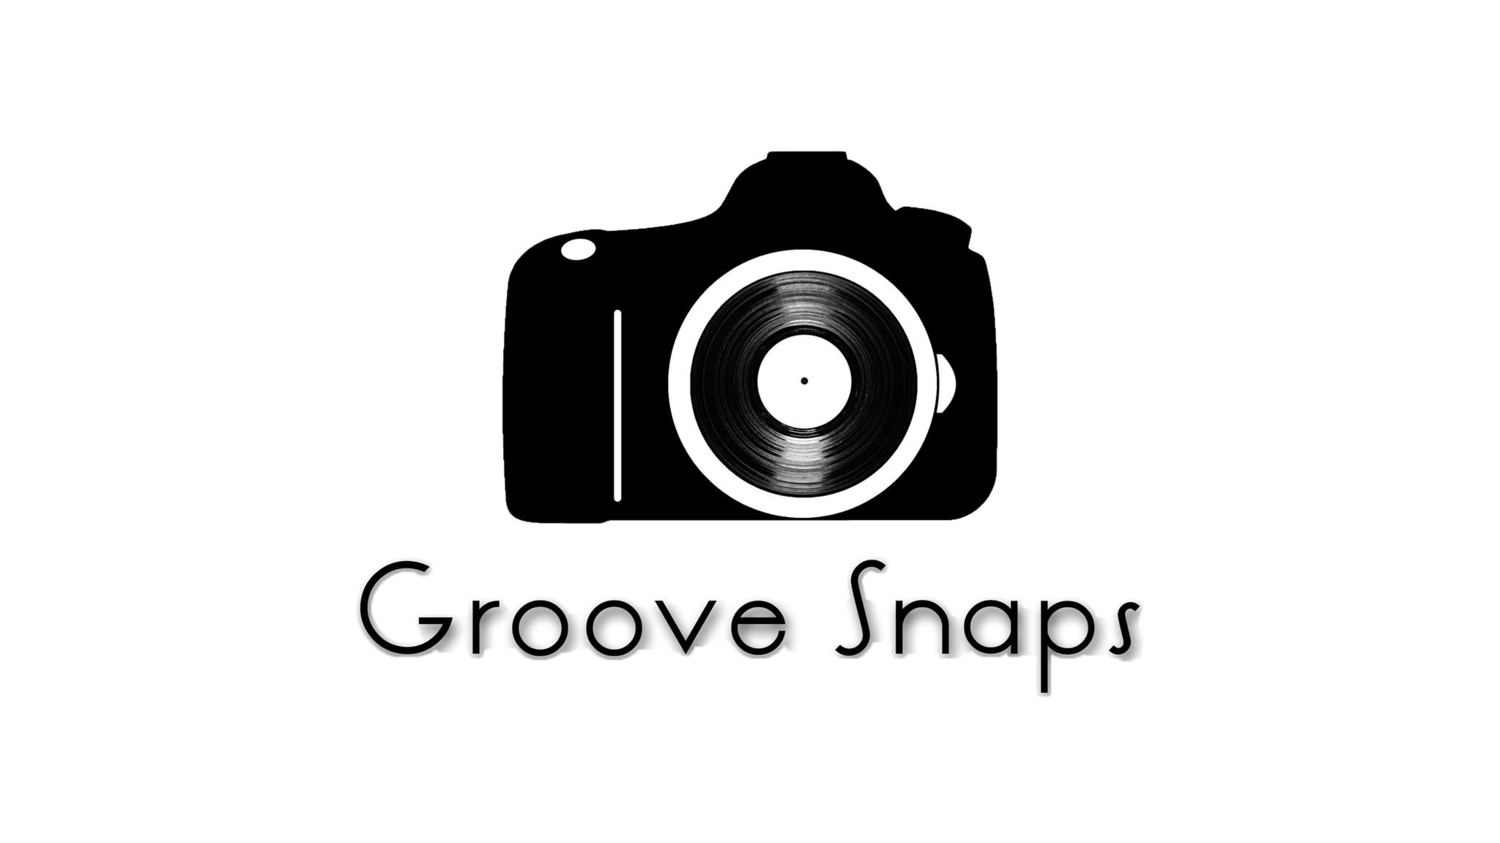 Groove Snaps